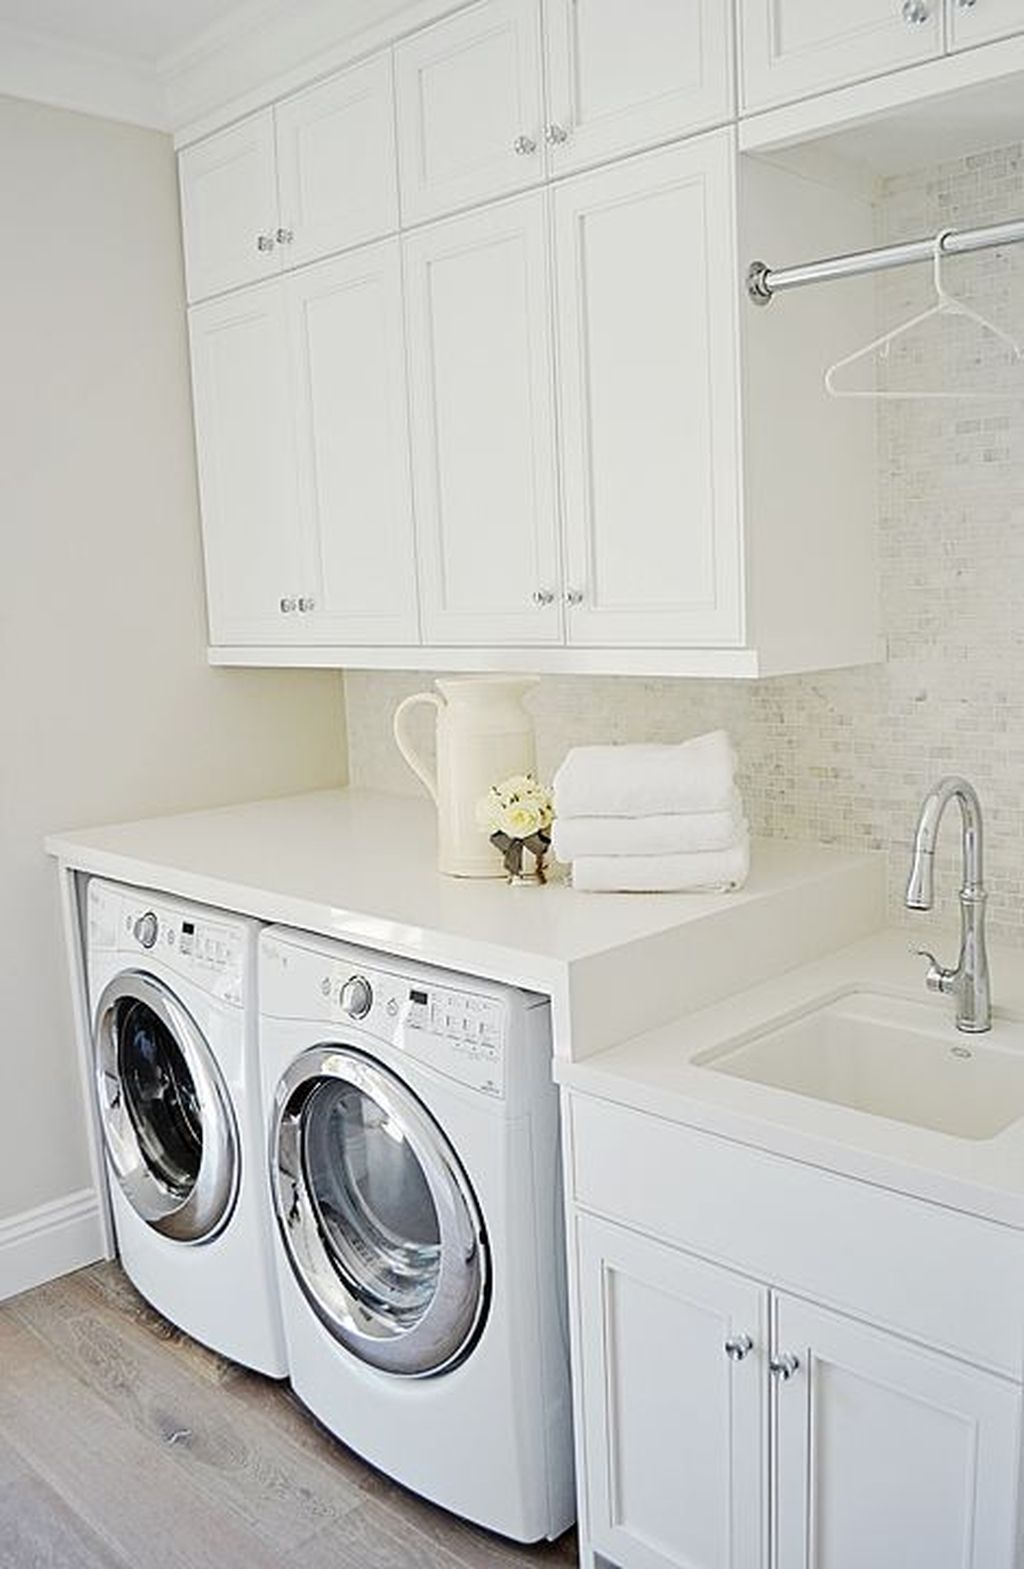 20 Small Laundry Room Ideas You Need To Know Laundry Room Layouts Laundry Room Inspiration Laundry Room Design